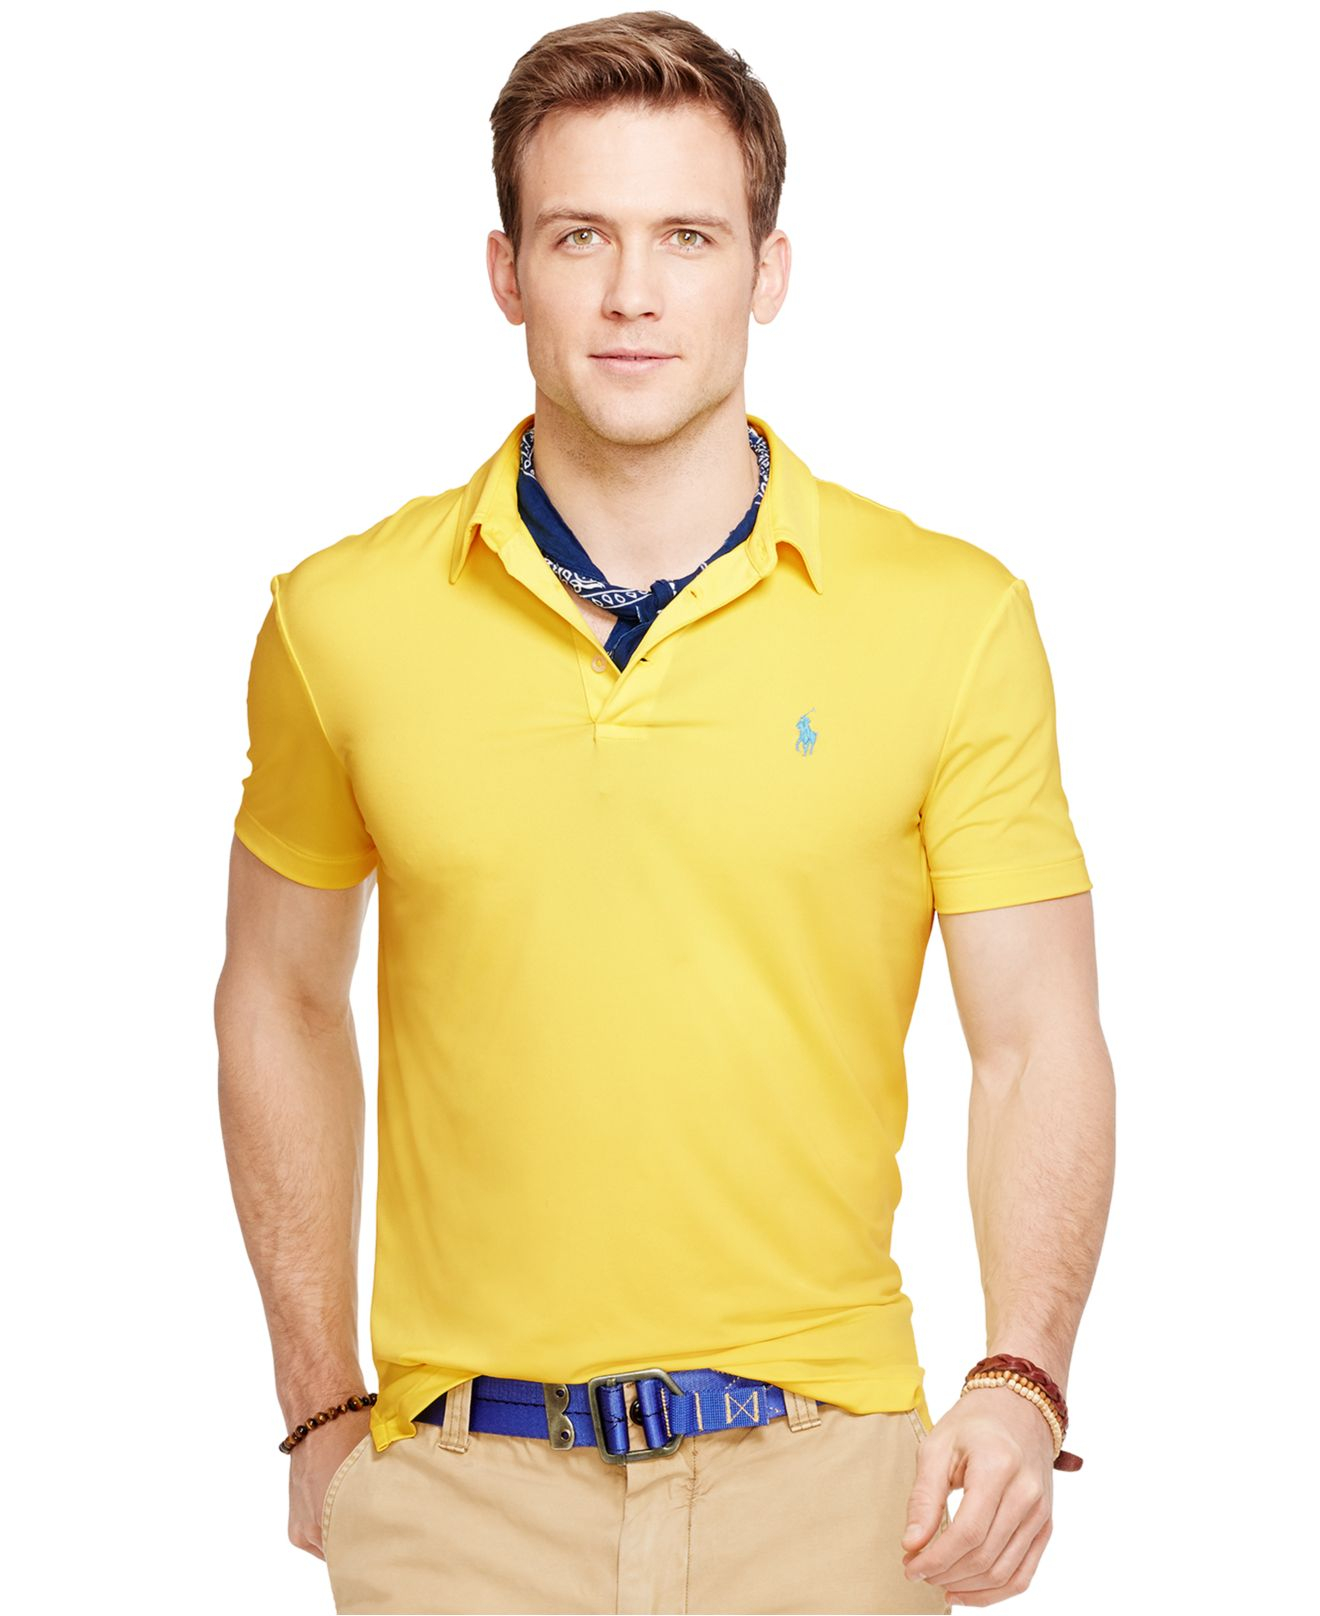 Lyst Polo Ralph Lauren Performance Polo Shirt In Yellow For Men